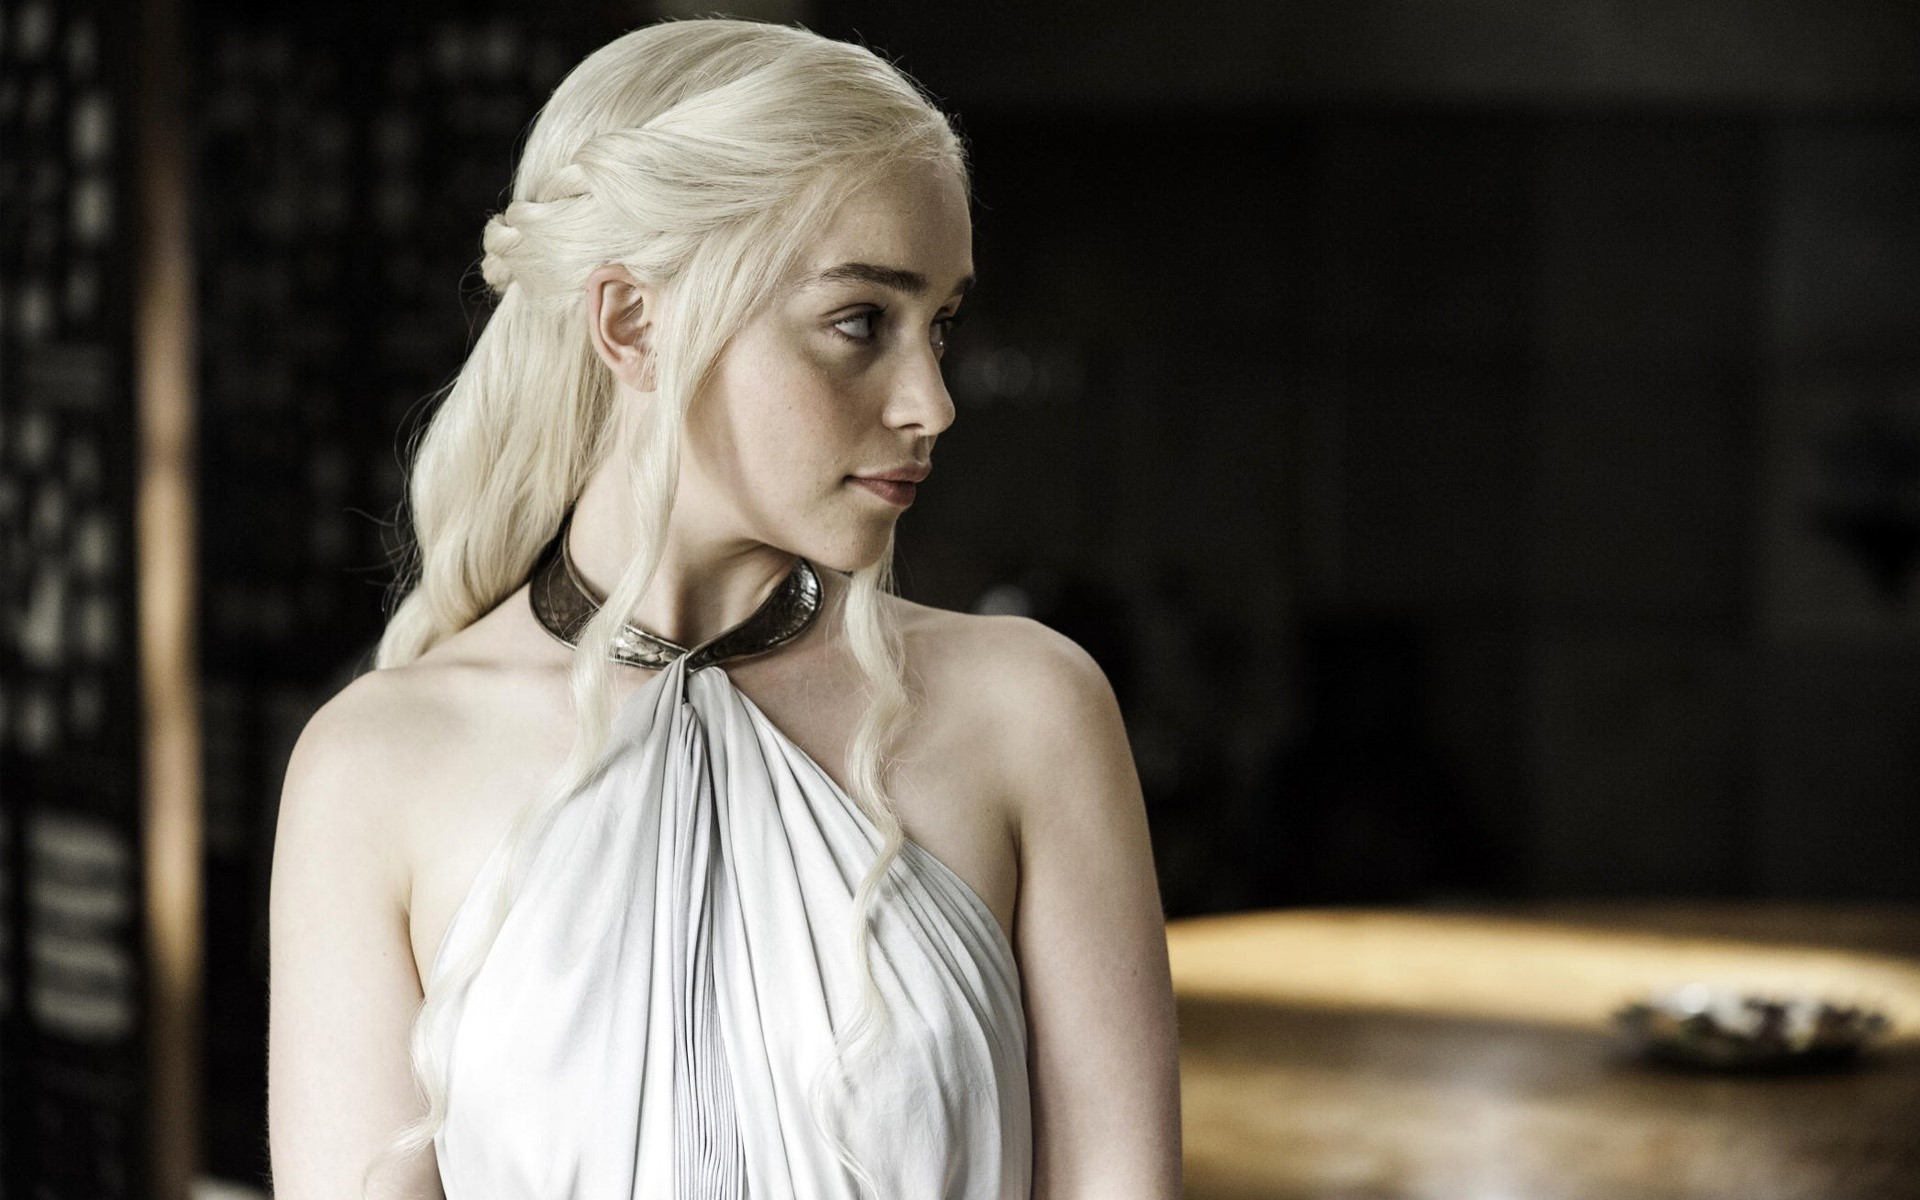 Wallpaper Emilia Clarke looking to the right